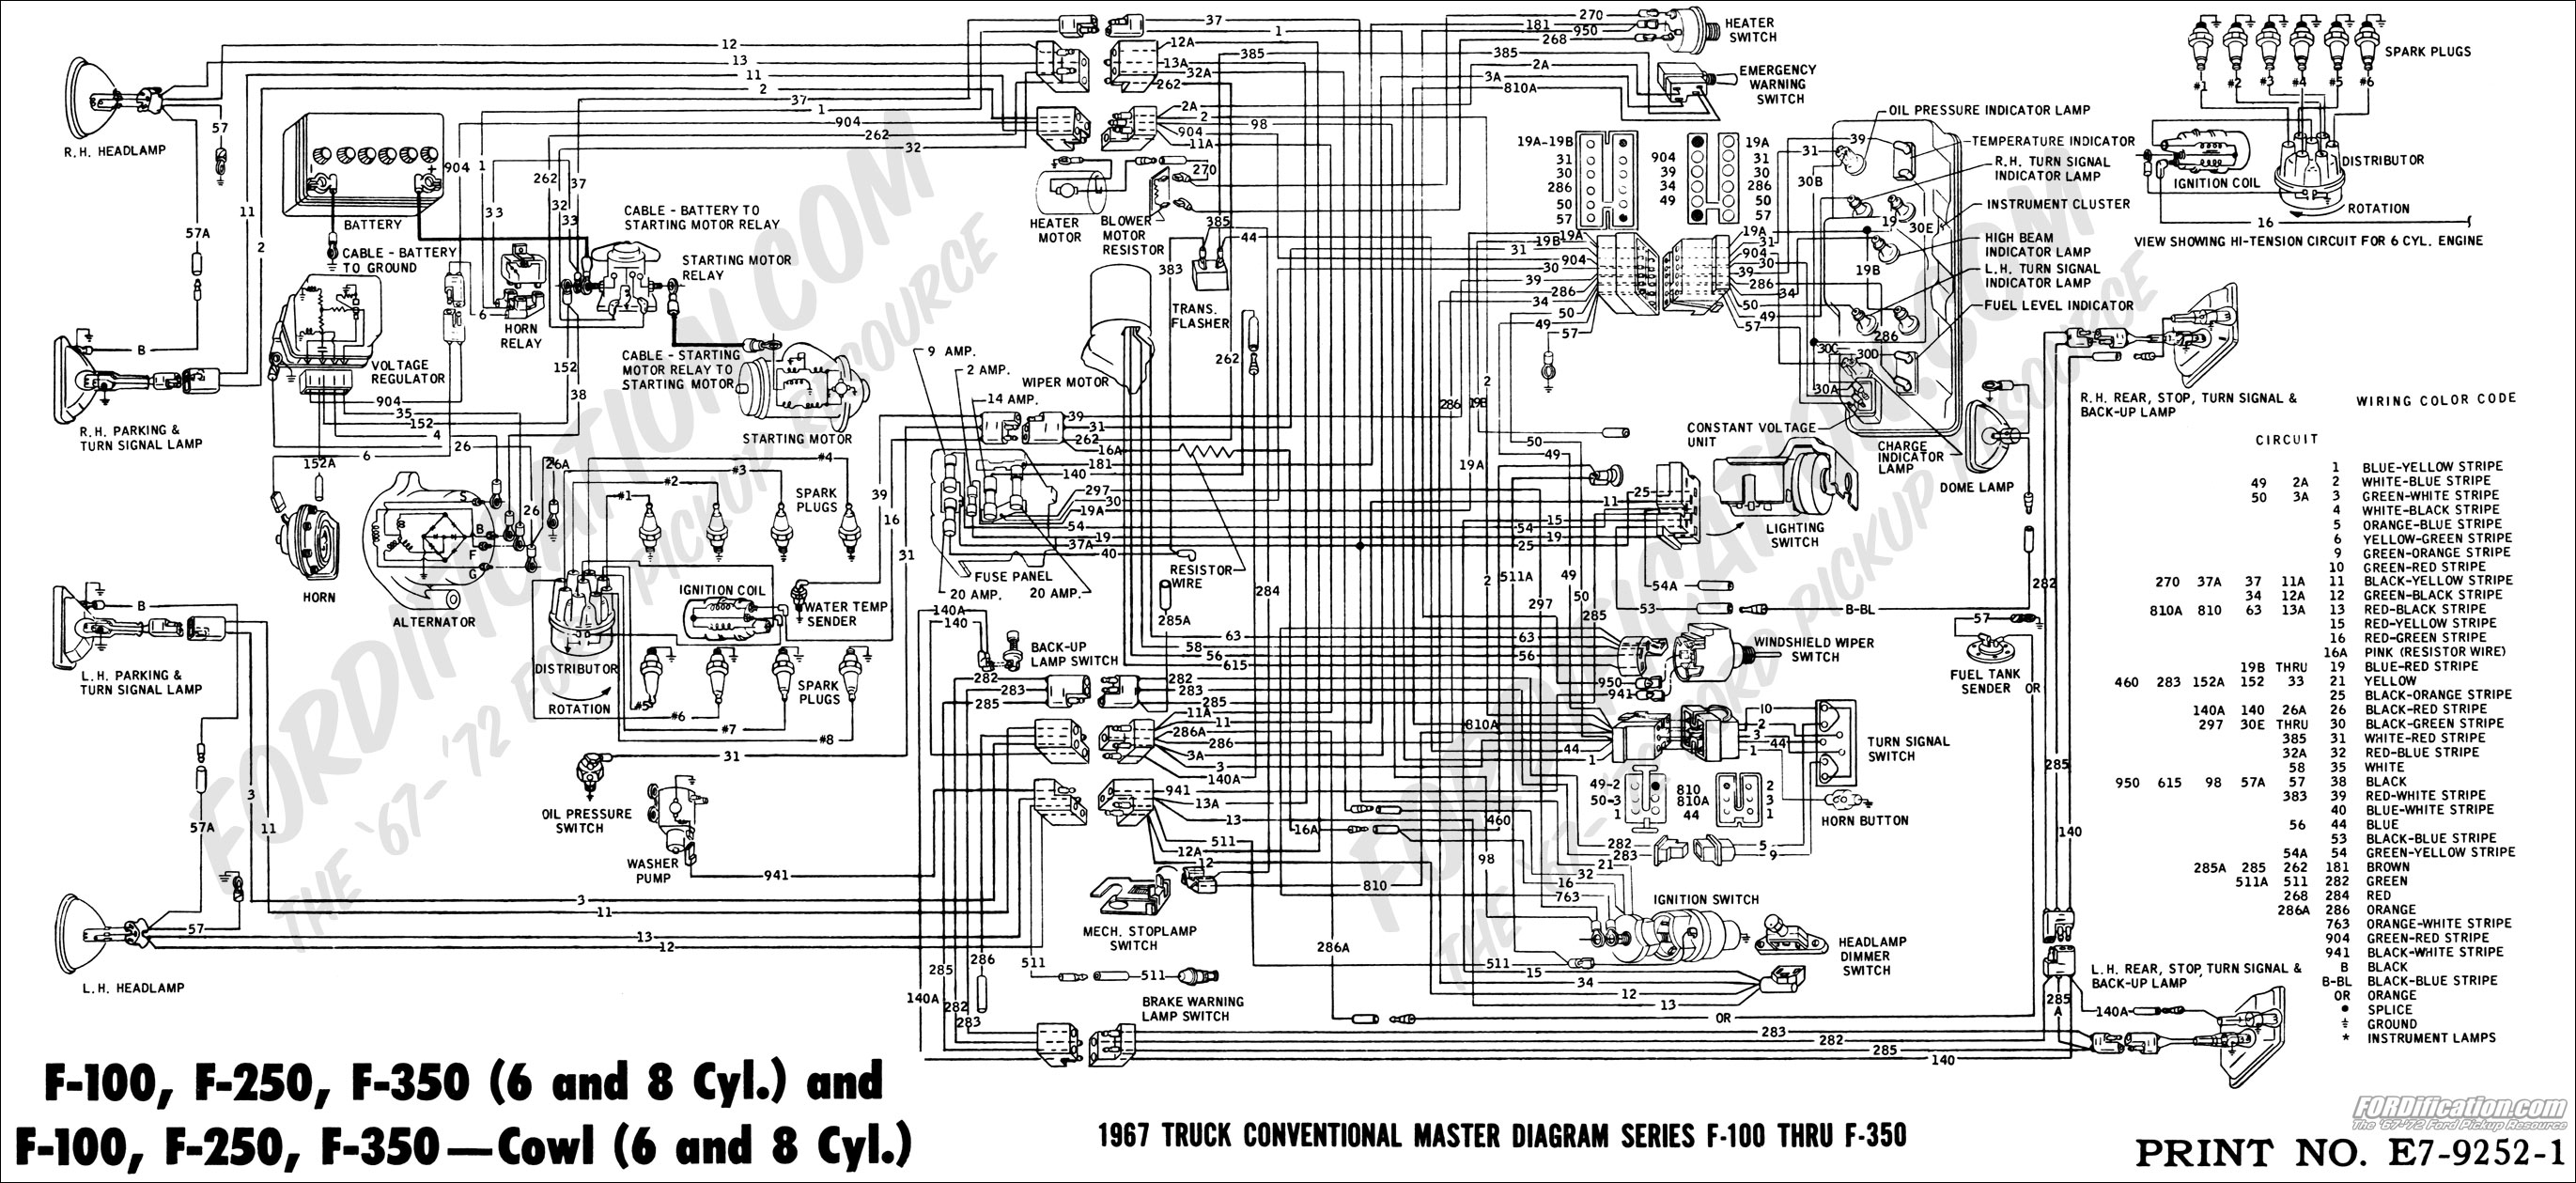 67masterdiagram free wiring diagrams \u2022 life quotes co 2005 f350 wiring diagram at panicattacktreatment.co